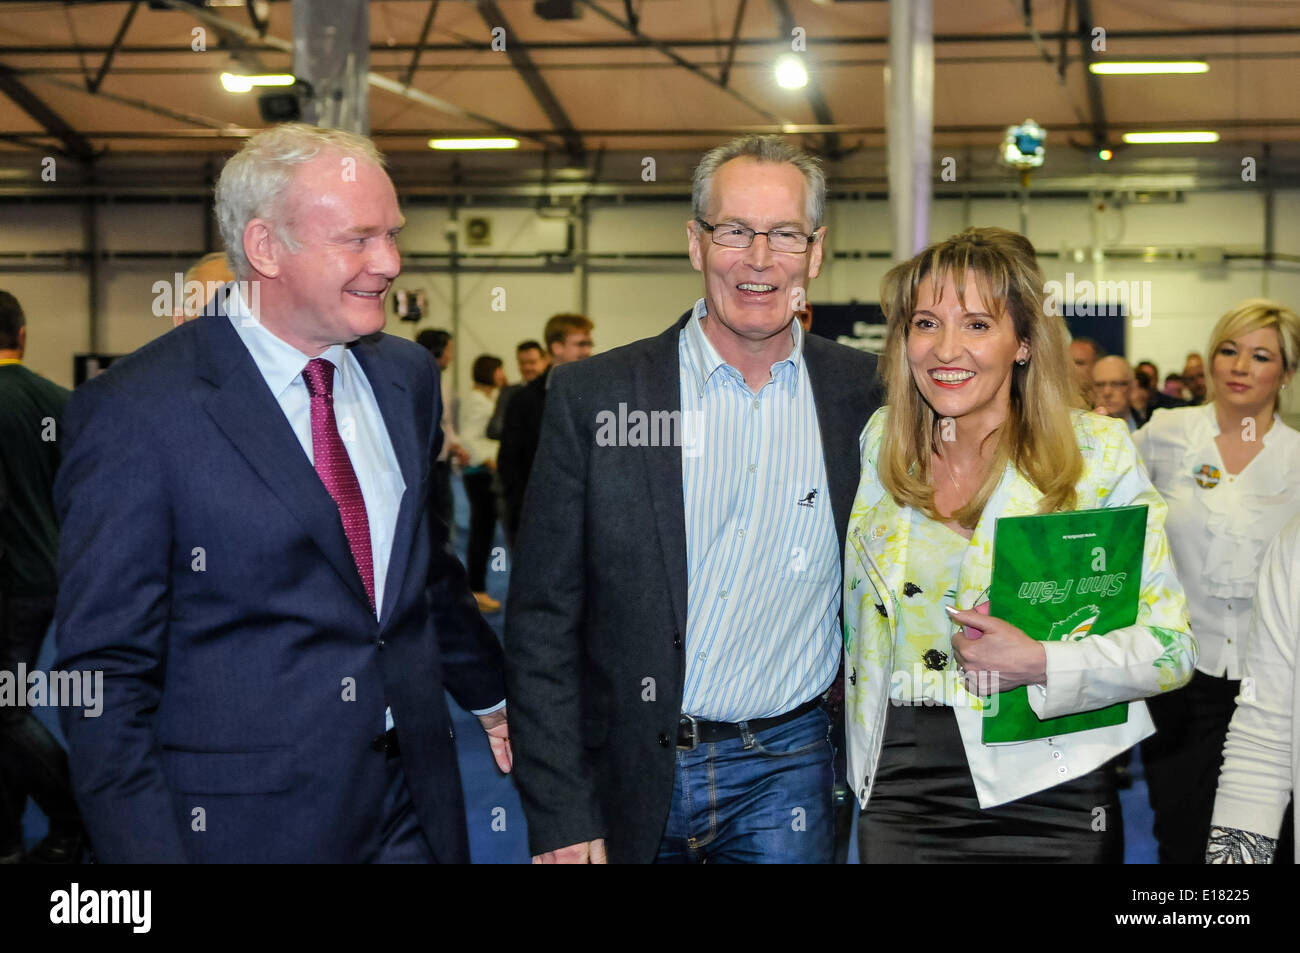 Belfast, Northern Ireland. 26 May 2014 - Sinn Fein candidate Martina Anderson arrives at EU counting station with Deputy First Minister Martin McGuinness, Belfast Credit:  Stephen Barnes/Alamy Live News - Stock Image